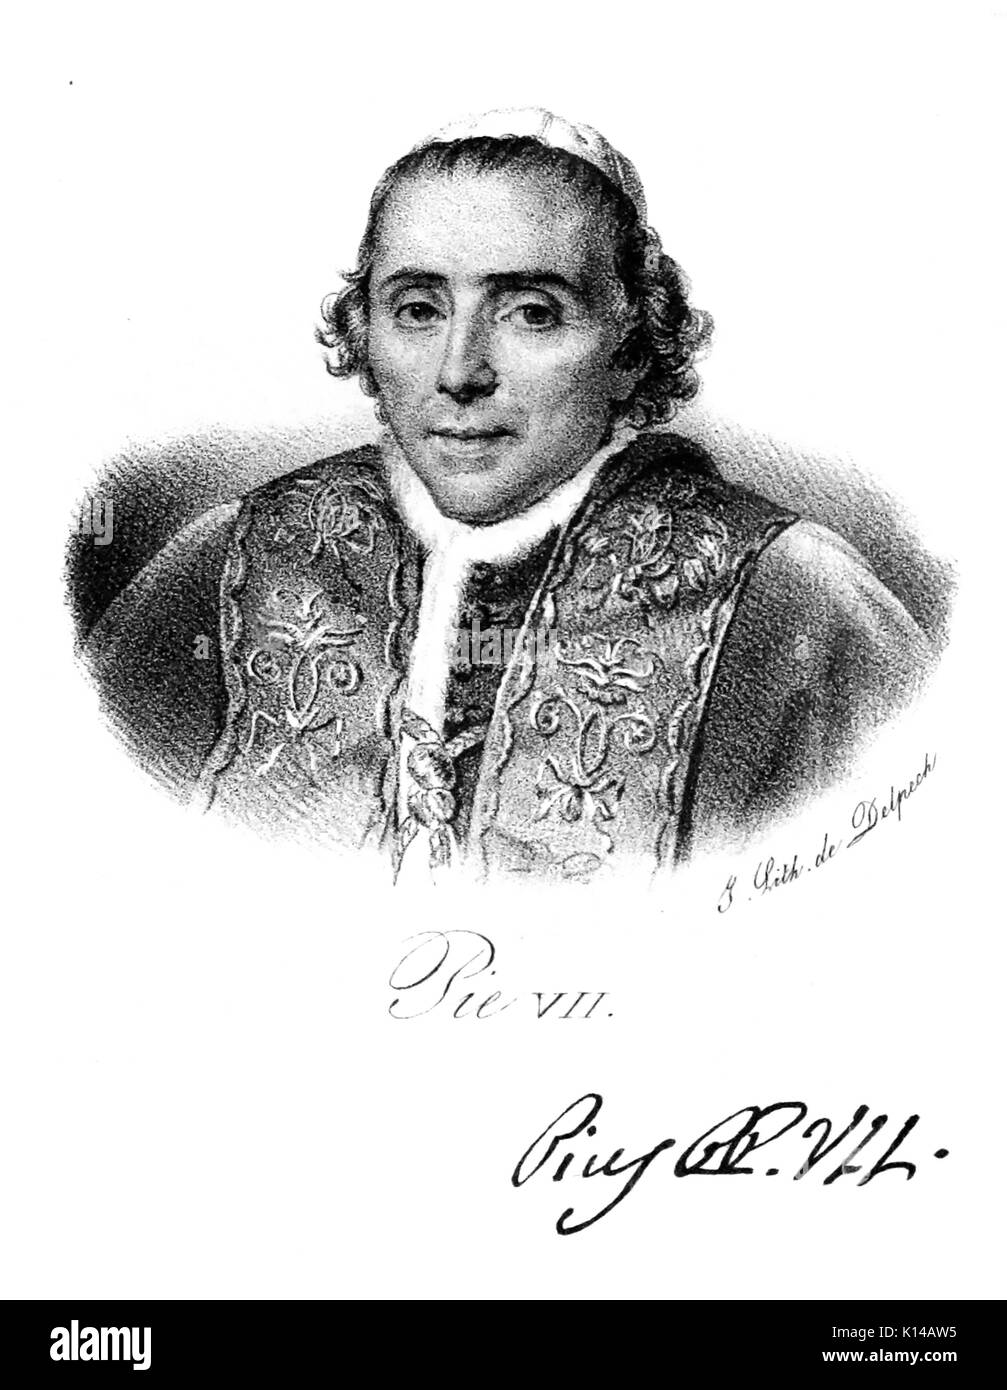 POPE PIUS VII (1742-1823) Engraving with signature based on Jacques-Louis David's 1805 painting - Stock Image